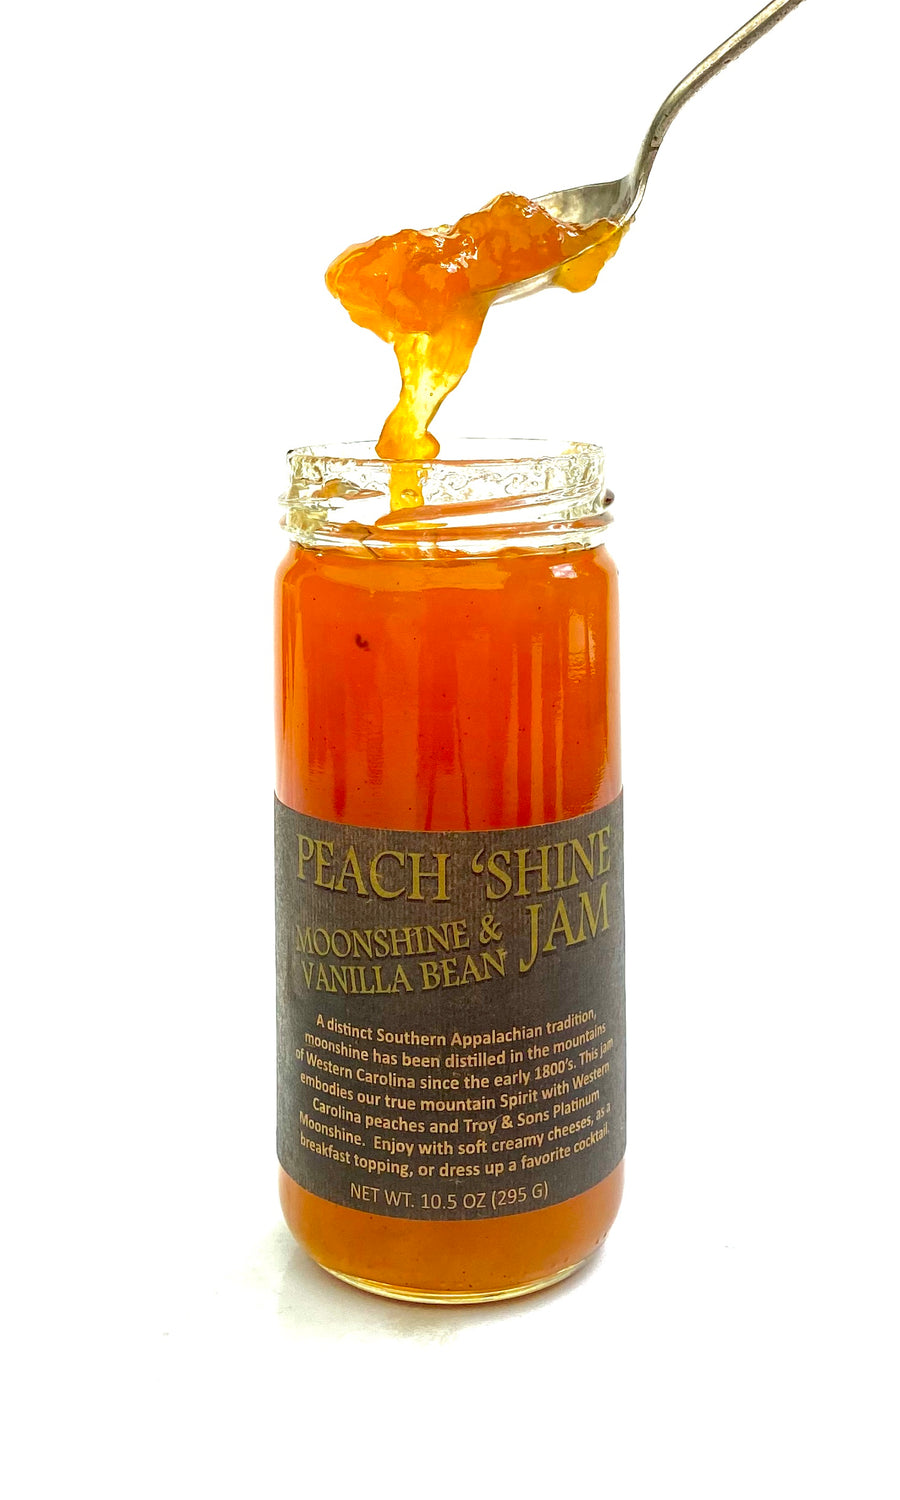 Peach 'Shine Jam - Moonshine & Vanilla Bean